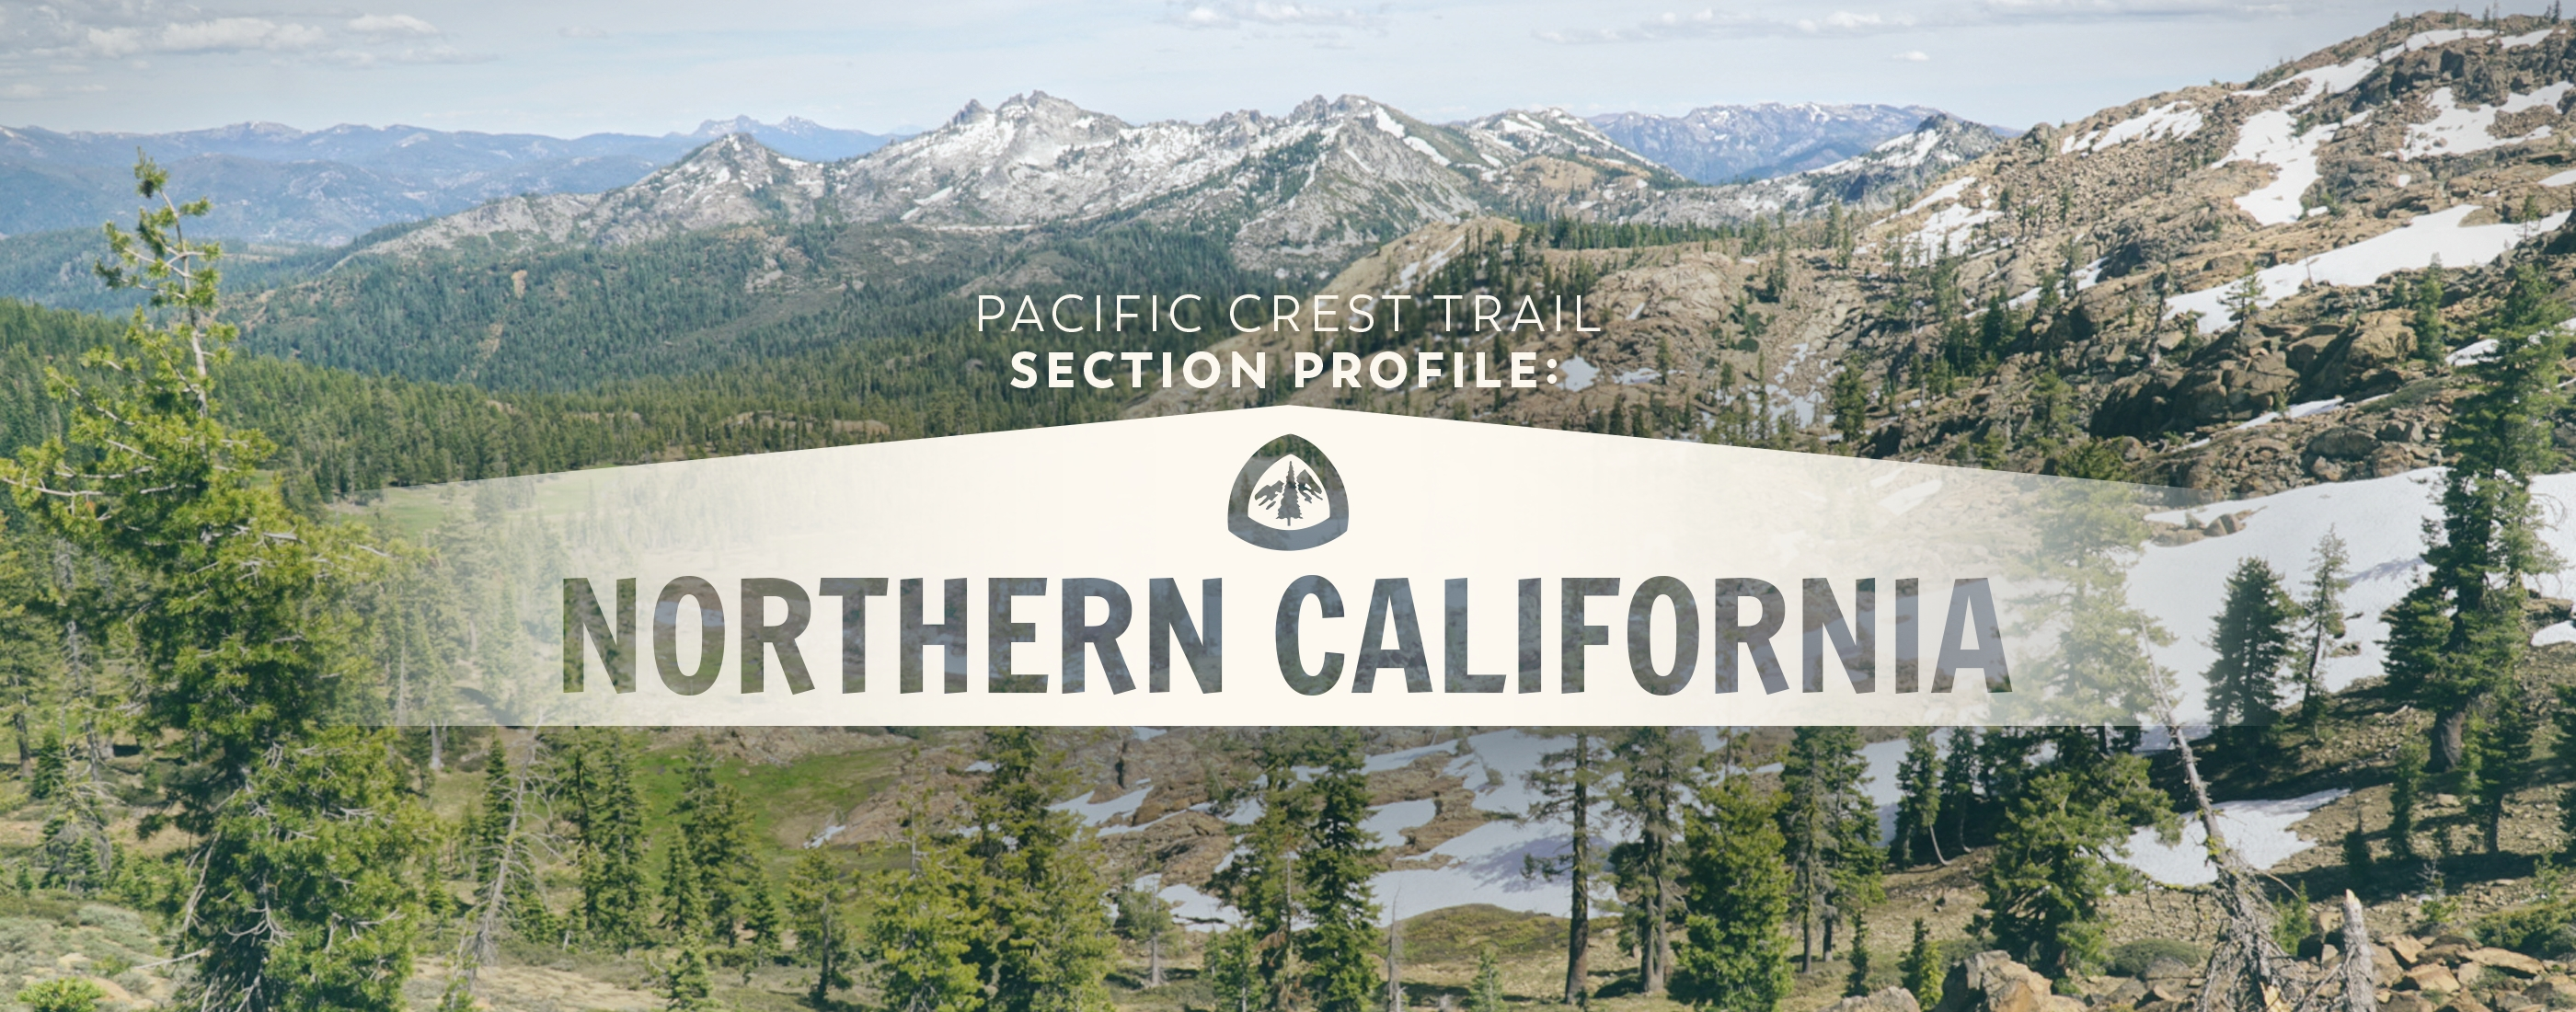 Pacific Crest Trail Section Profile: Northern California - The Trek